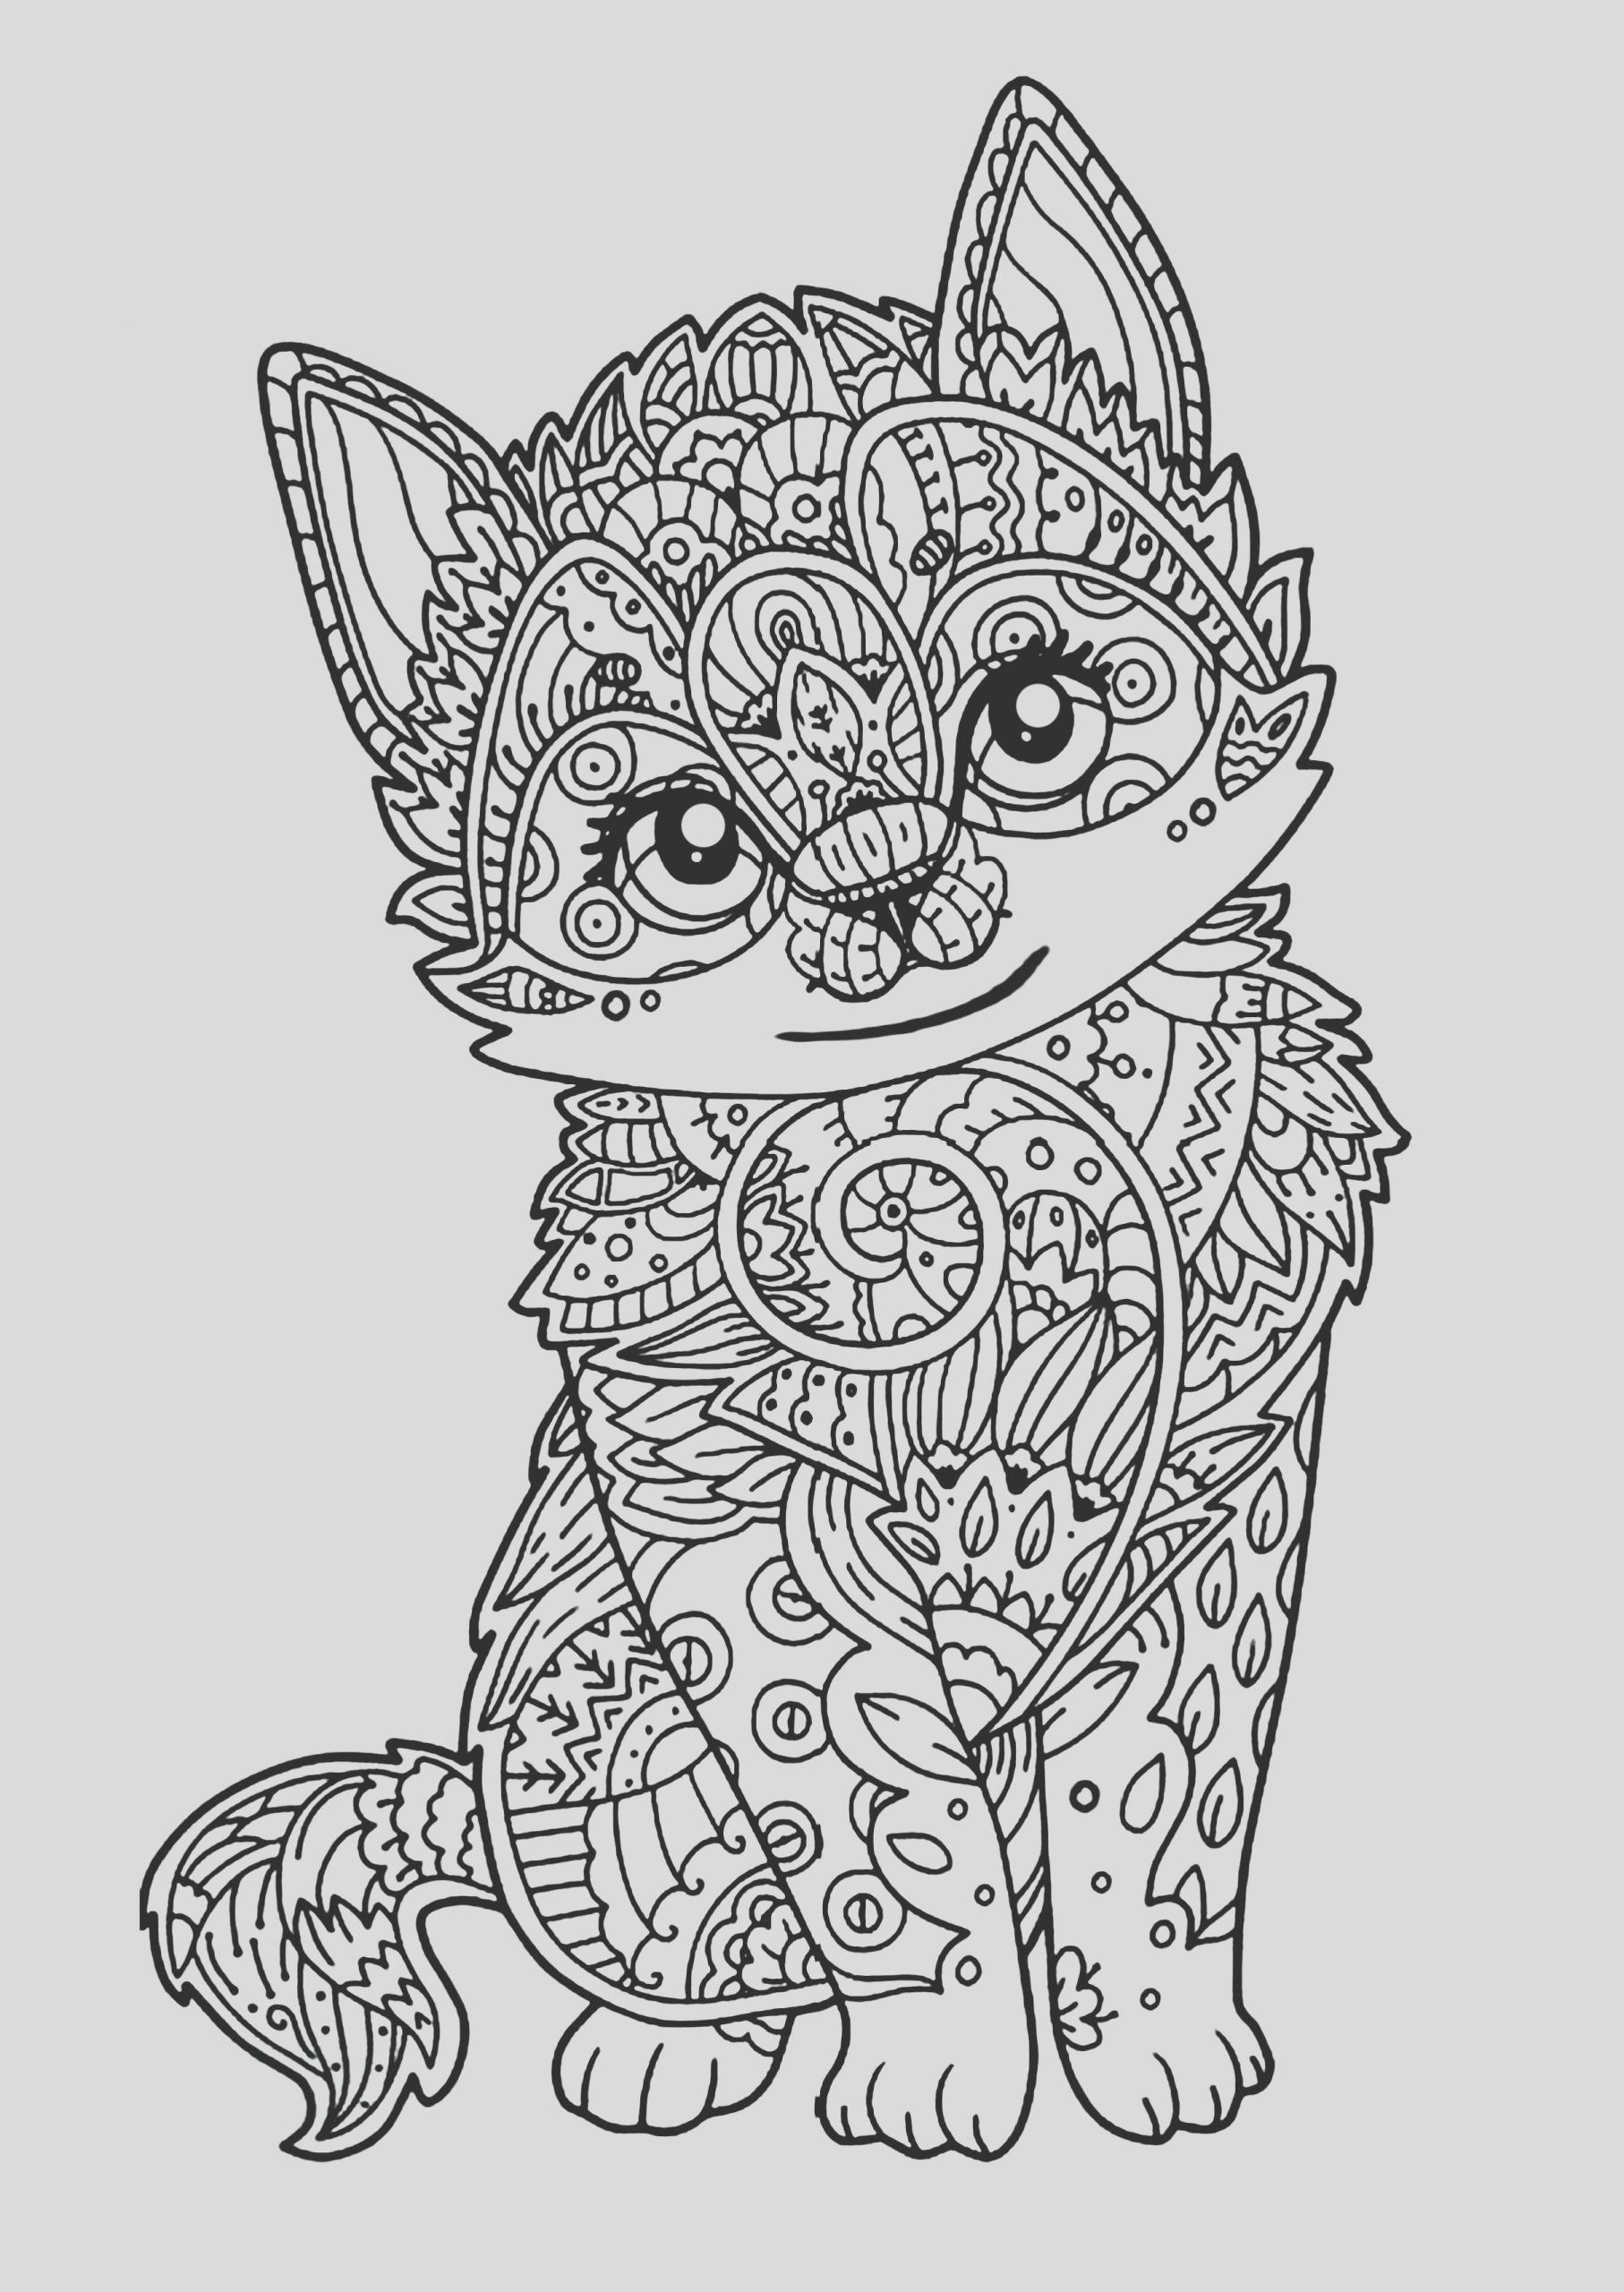 image=cats coloring cute kitten 1